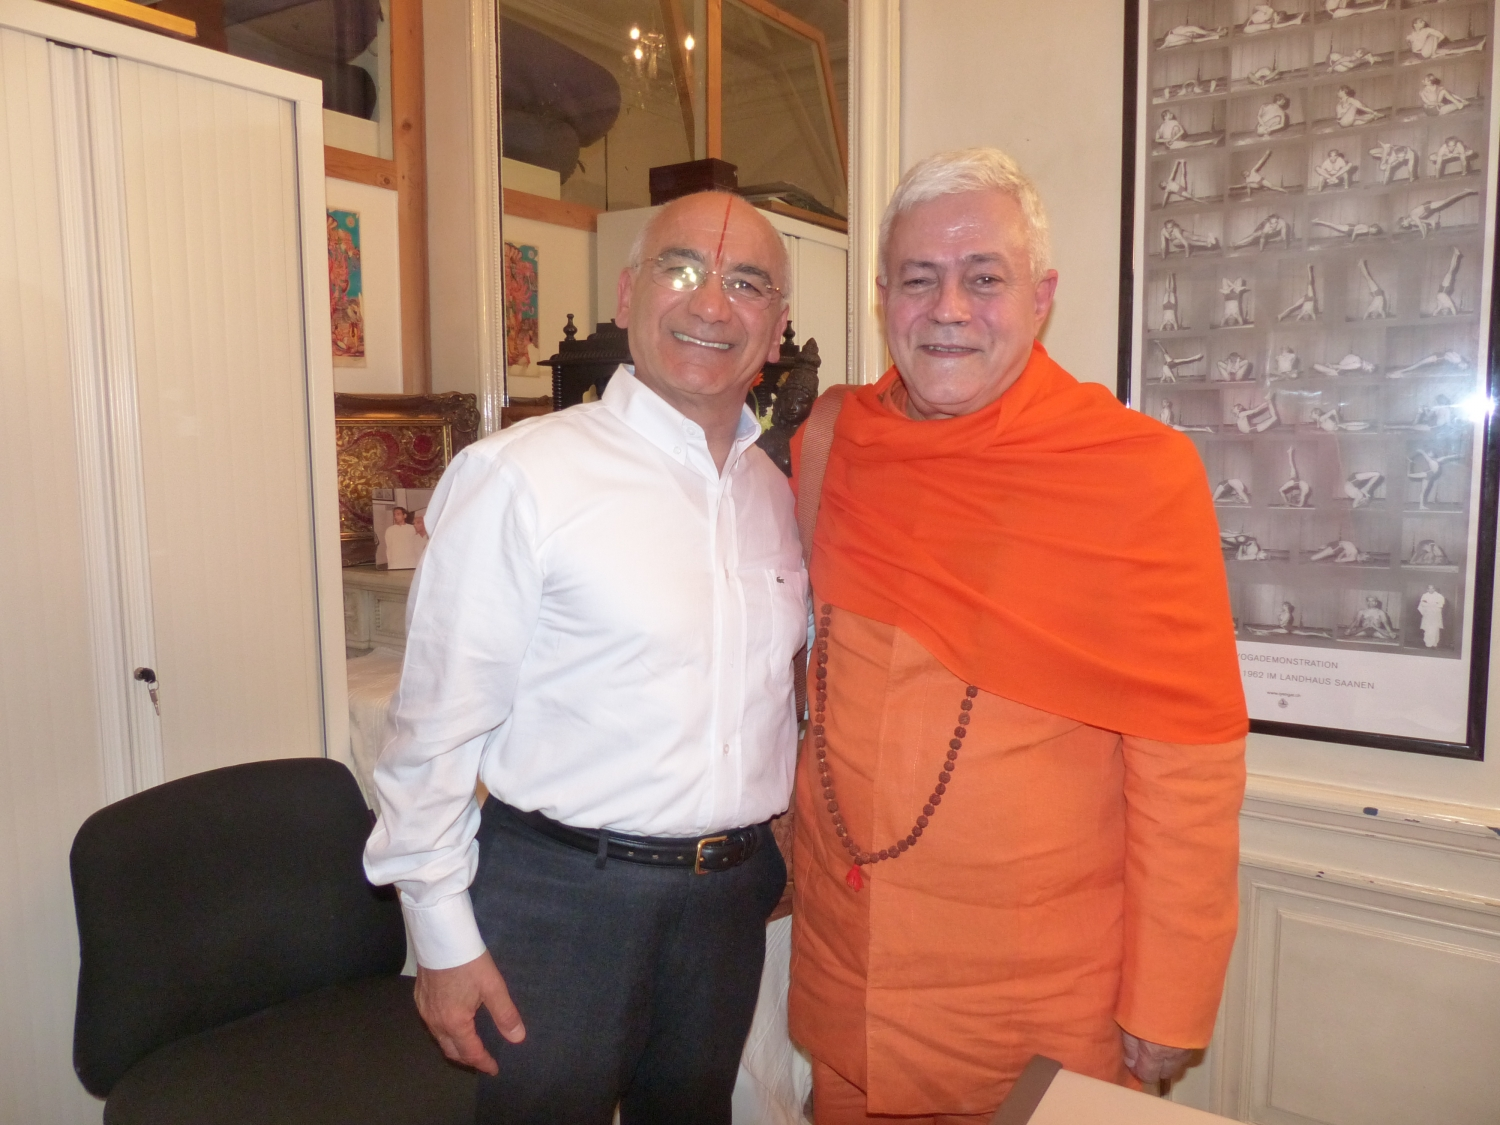 Meeting of H.H. Jagat Guru Amrta Sūryānanda Mahā Rāja with Guru Jī Srhrīcharan Faeq Biria - Centre de Yoga Iyengar de Paris - 2015, November, 26th